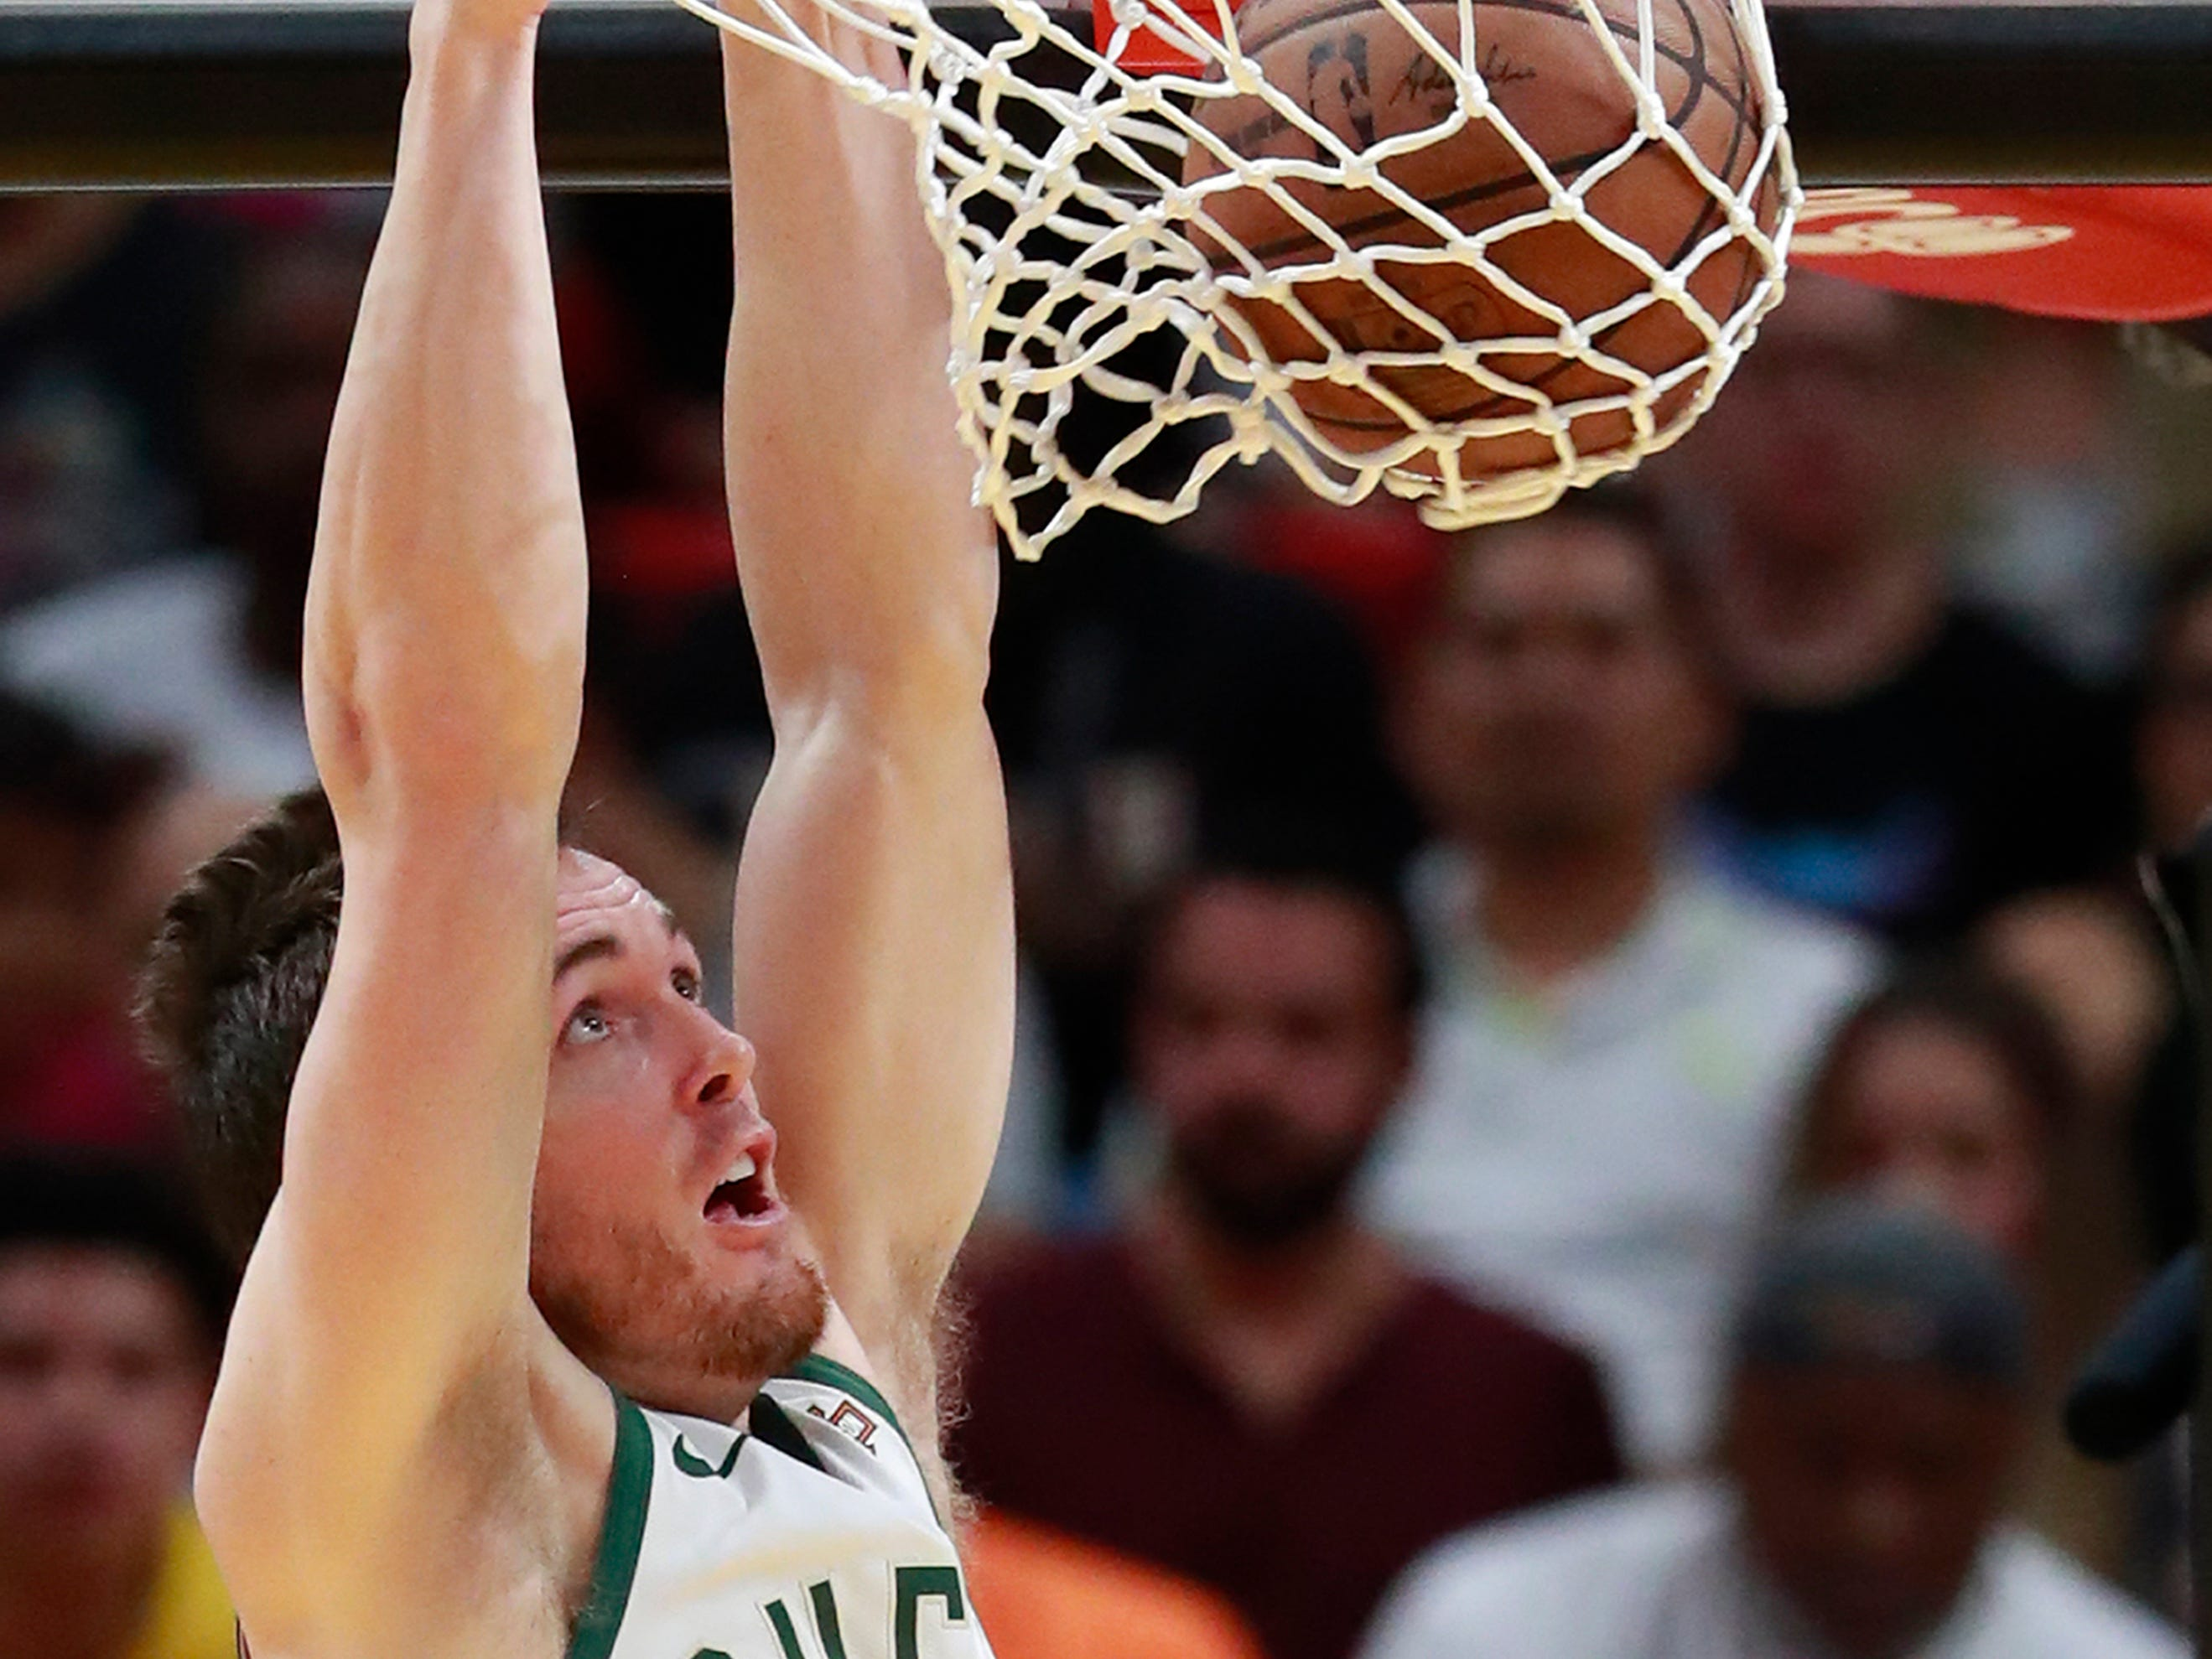 Bucks guard Pat Connaughton finishes a dunk and hangs on the rim.